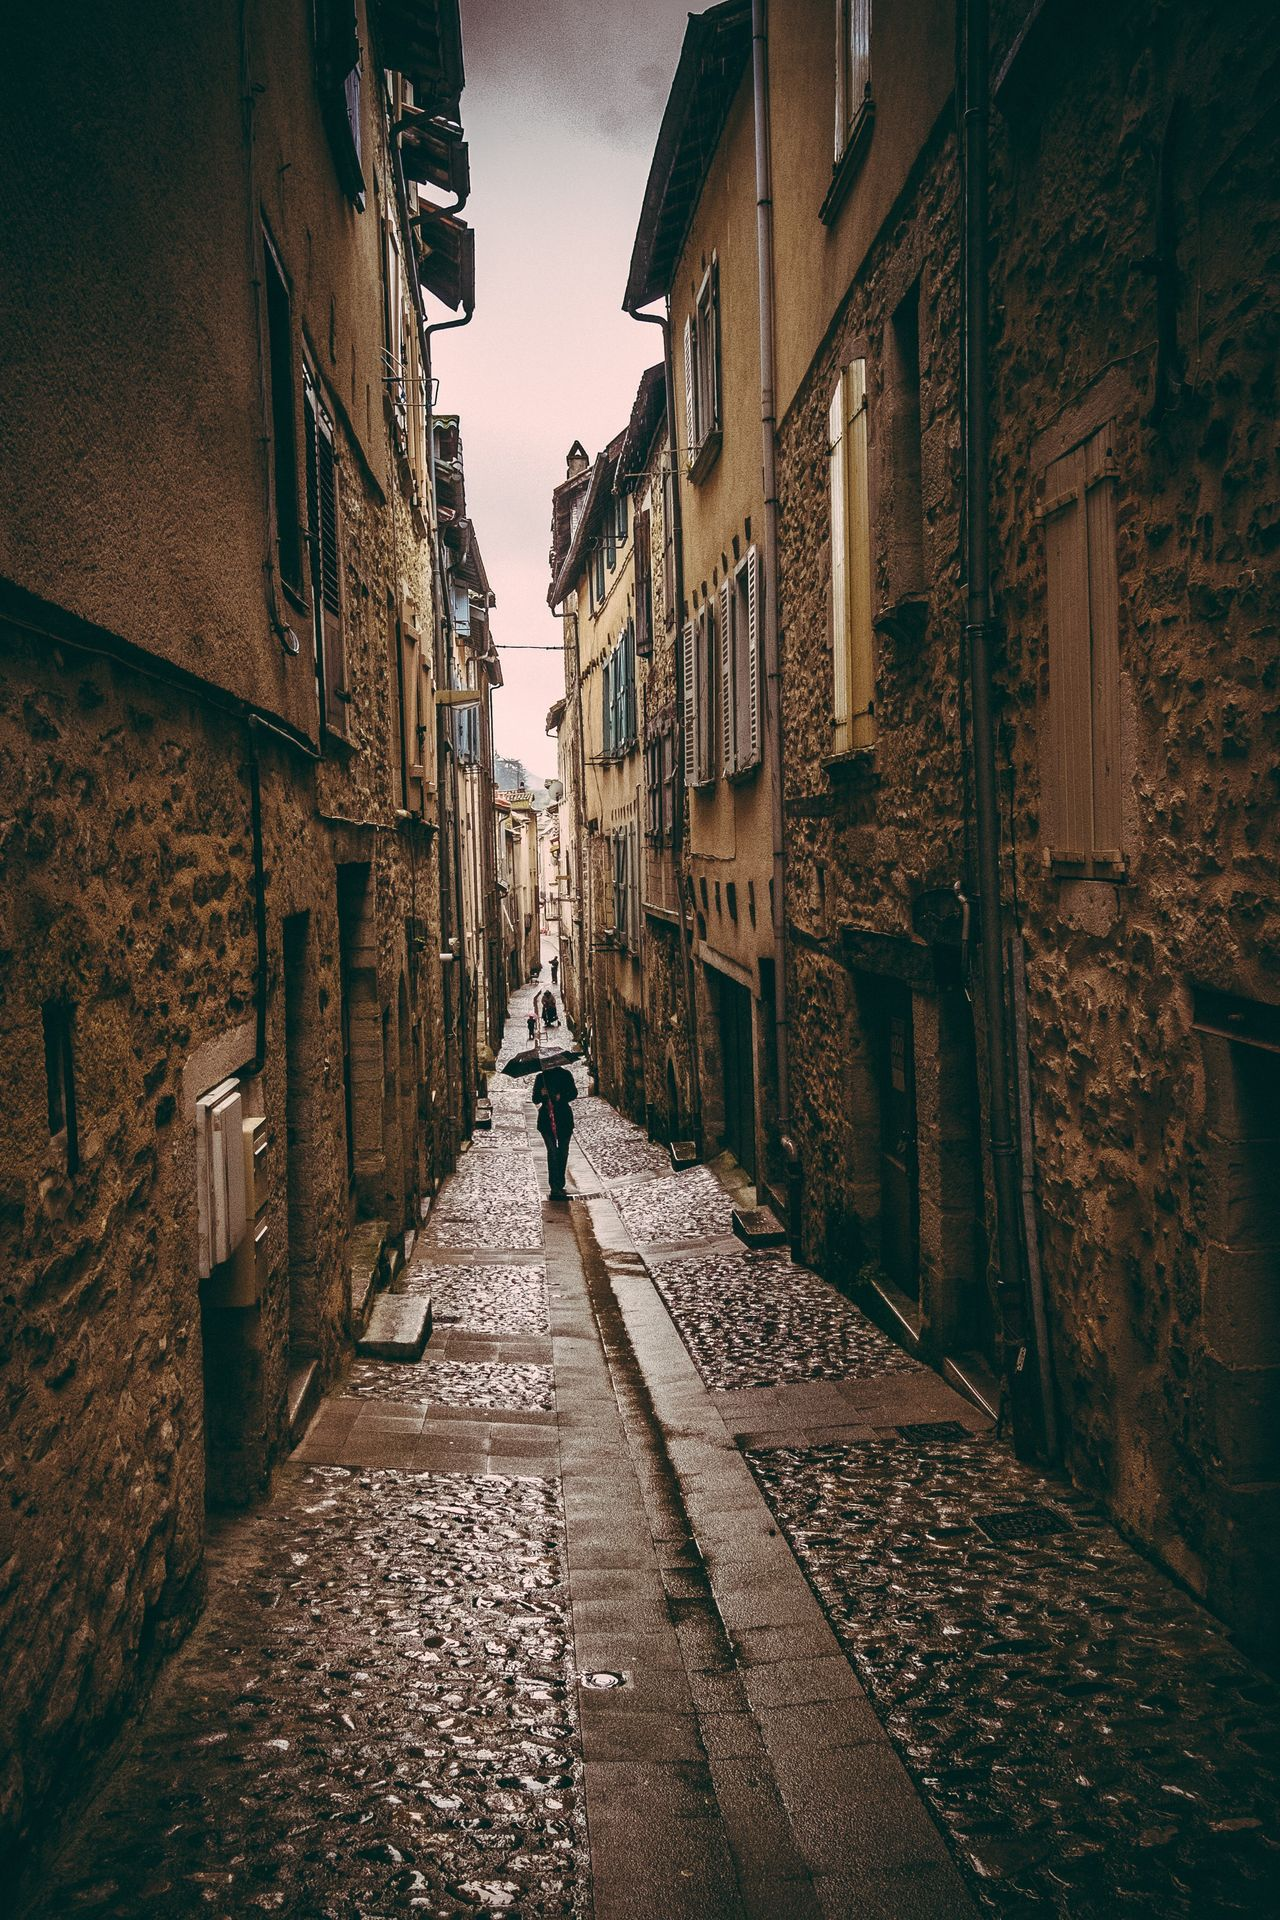 Wandering the narrow streets of Villefranche de Rouergue on a rainy day Villefranche De Rouergue Explore France Medieval Village French Village Old Village France Medieval Aveyron France Old Village France Streets Street View City Life Urbanexploration Rainy Days Rainy Street Narrow Street